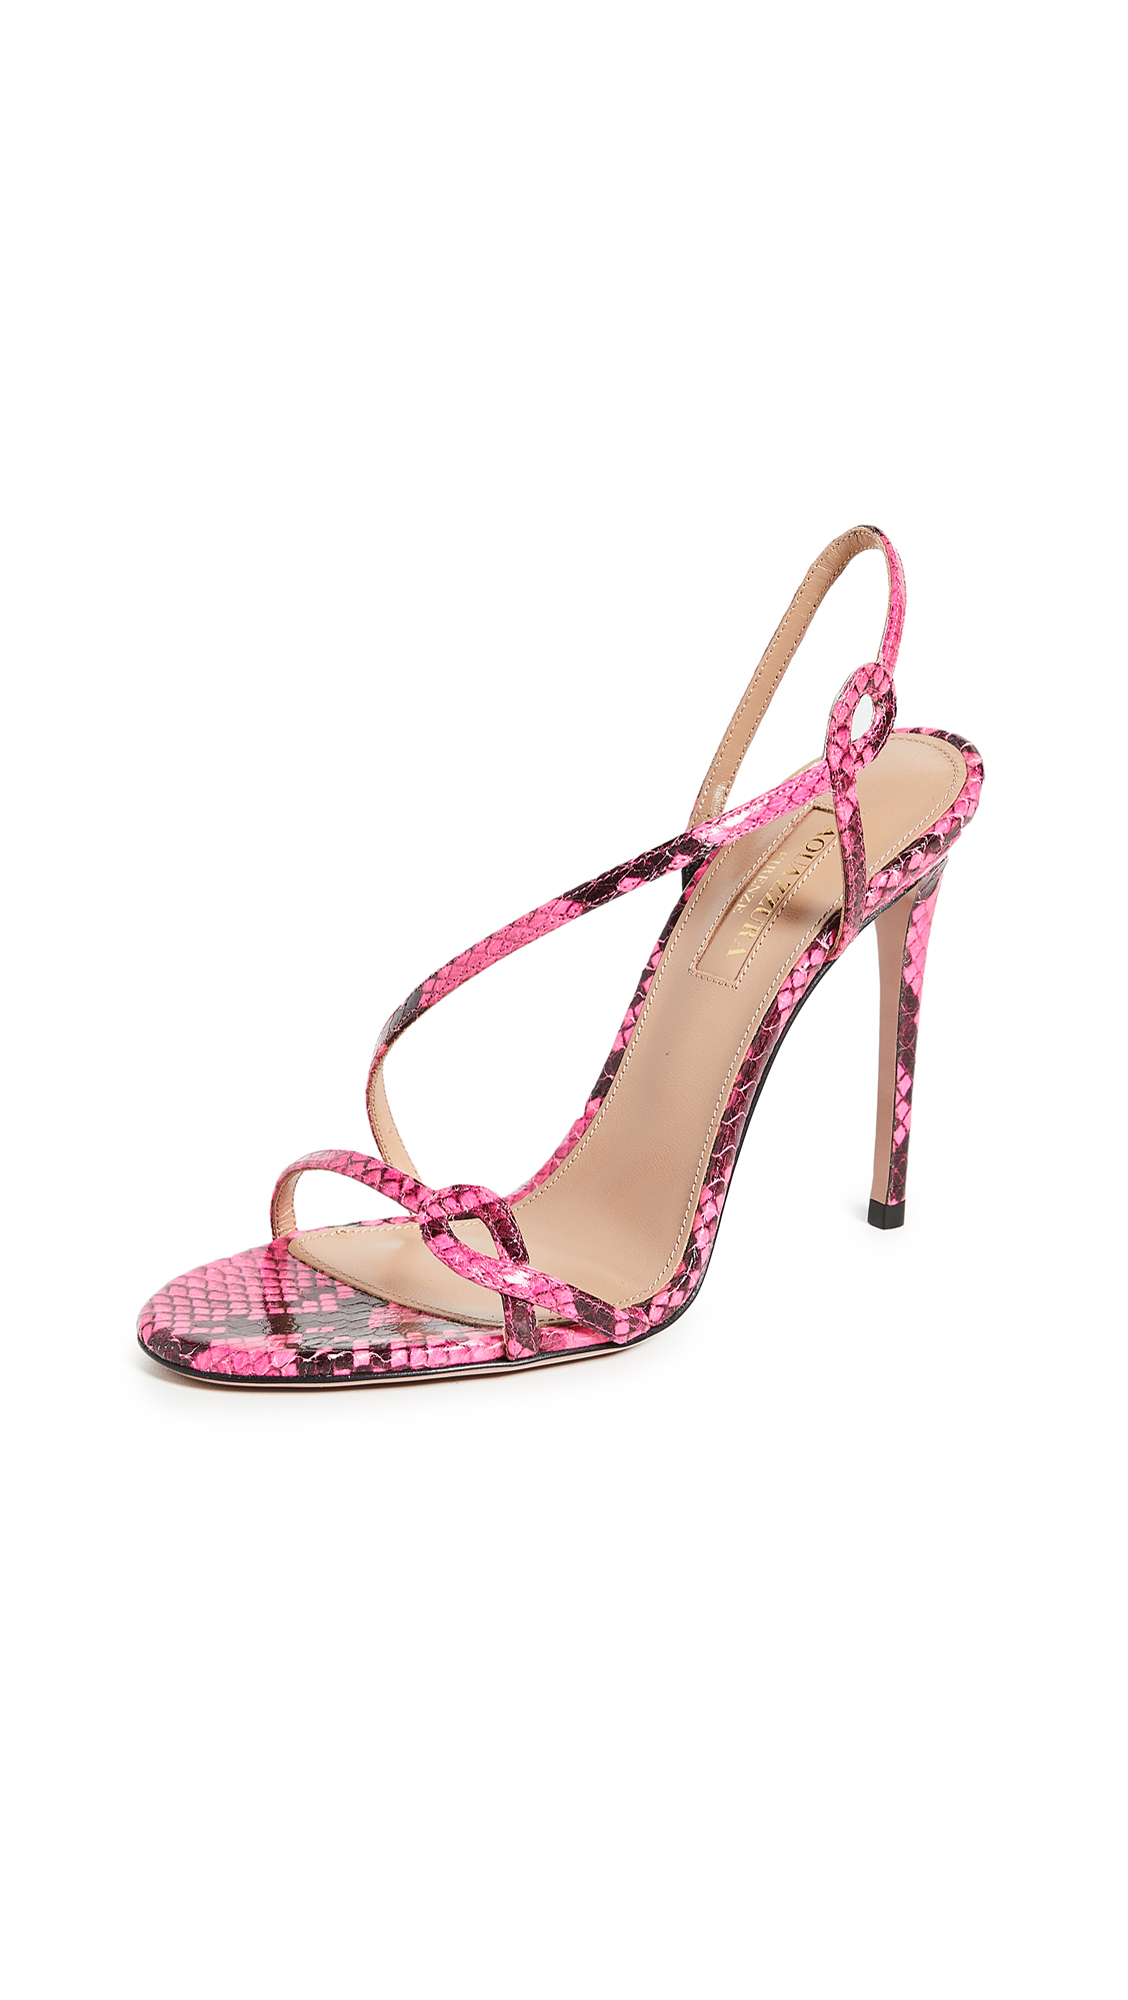 Buy Aquazzura 105mm Serpentine Sandals online, shop Aquazzura